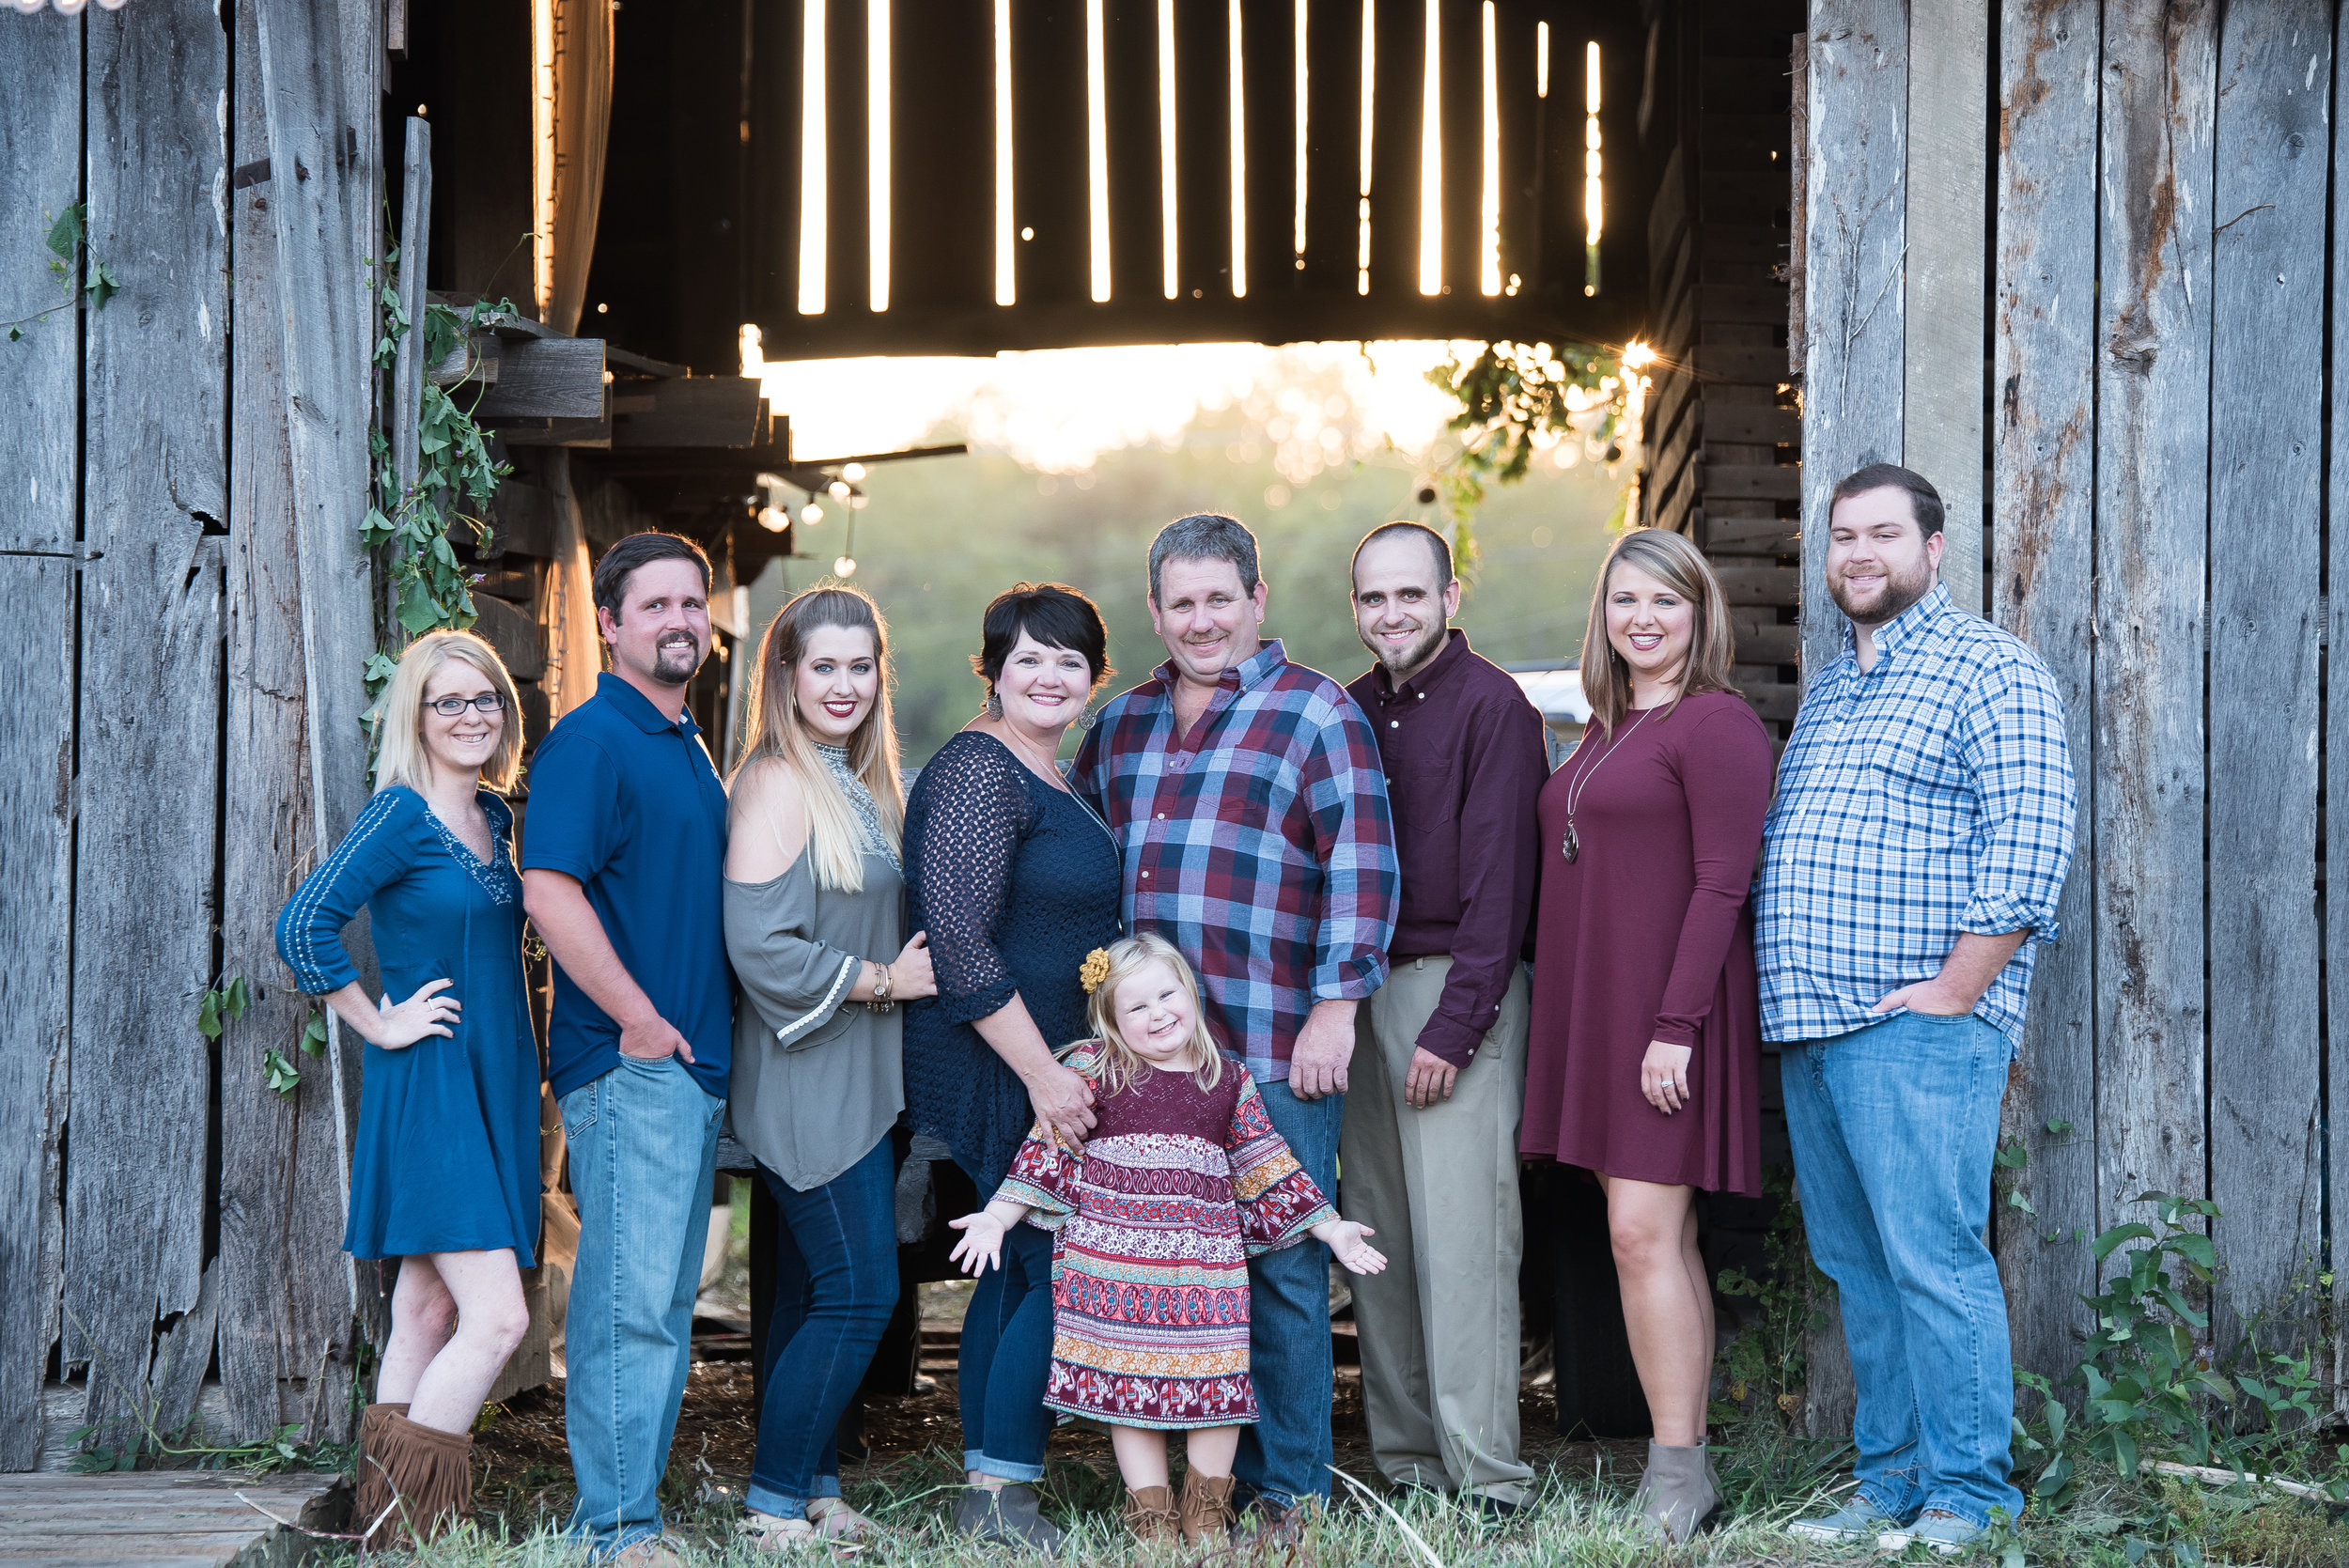 Wear to what for family photos fall